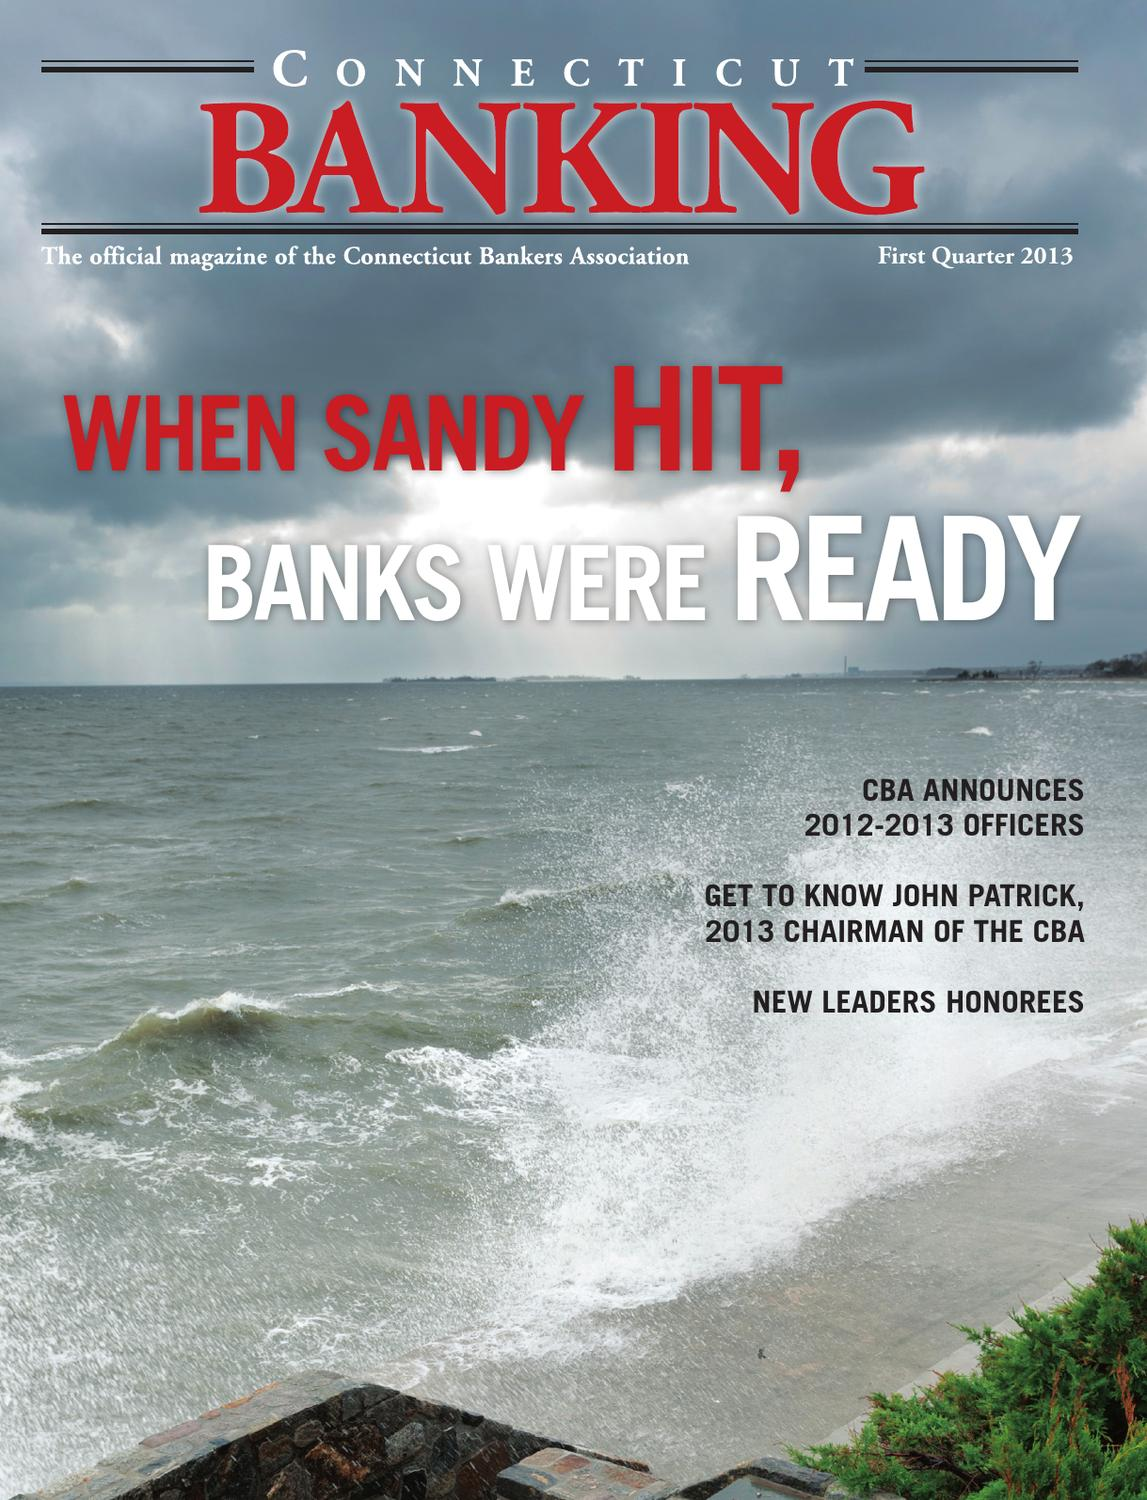 Connecticut Banking, 1Q 2013 by The Warren Group - issuu